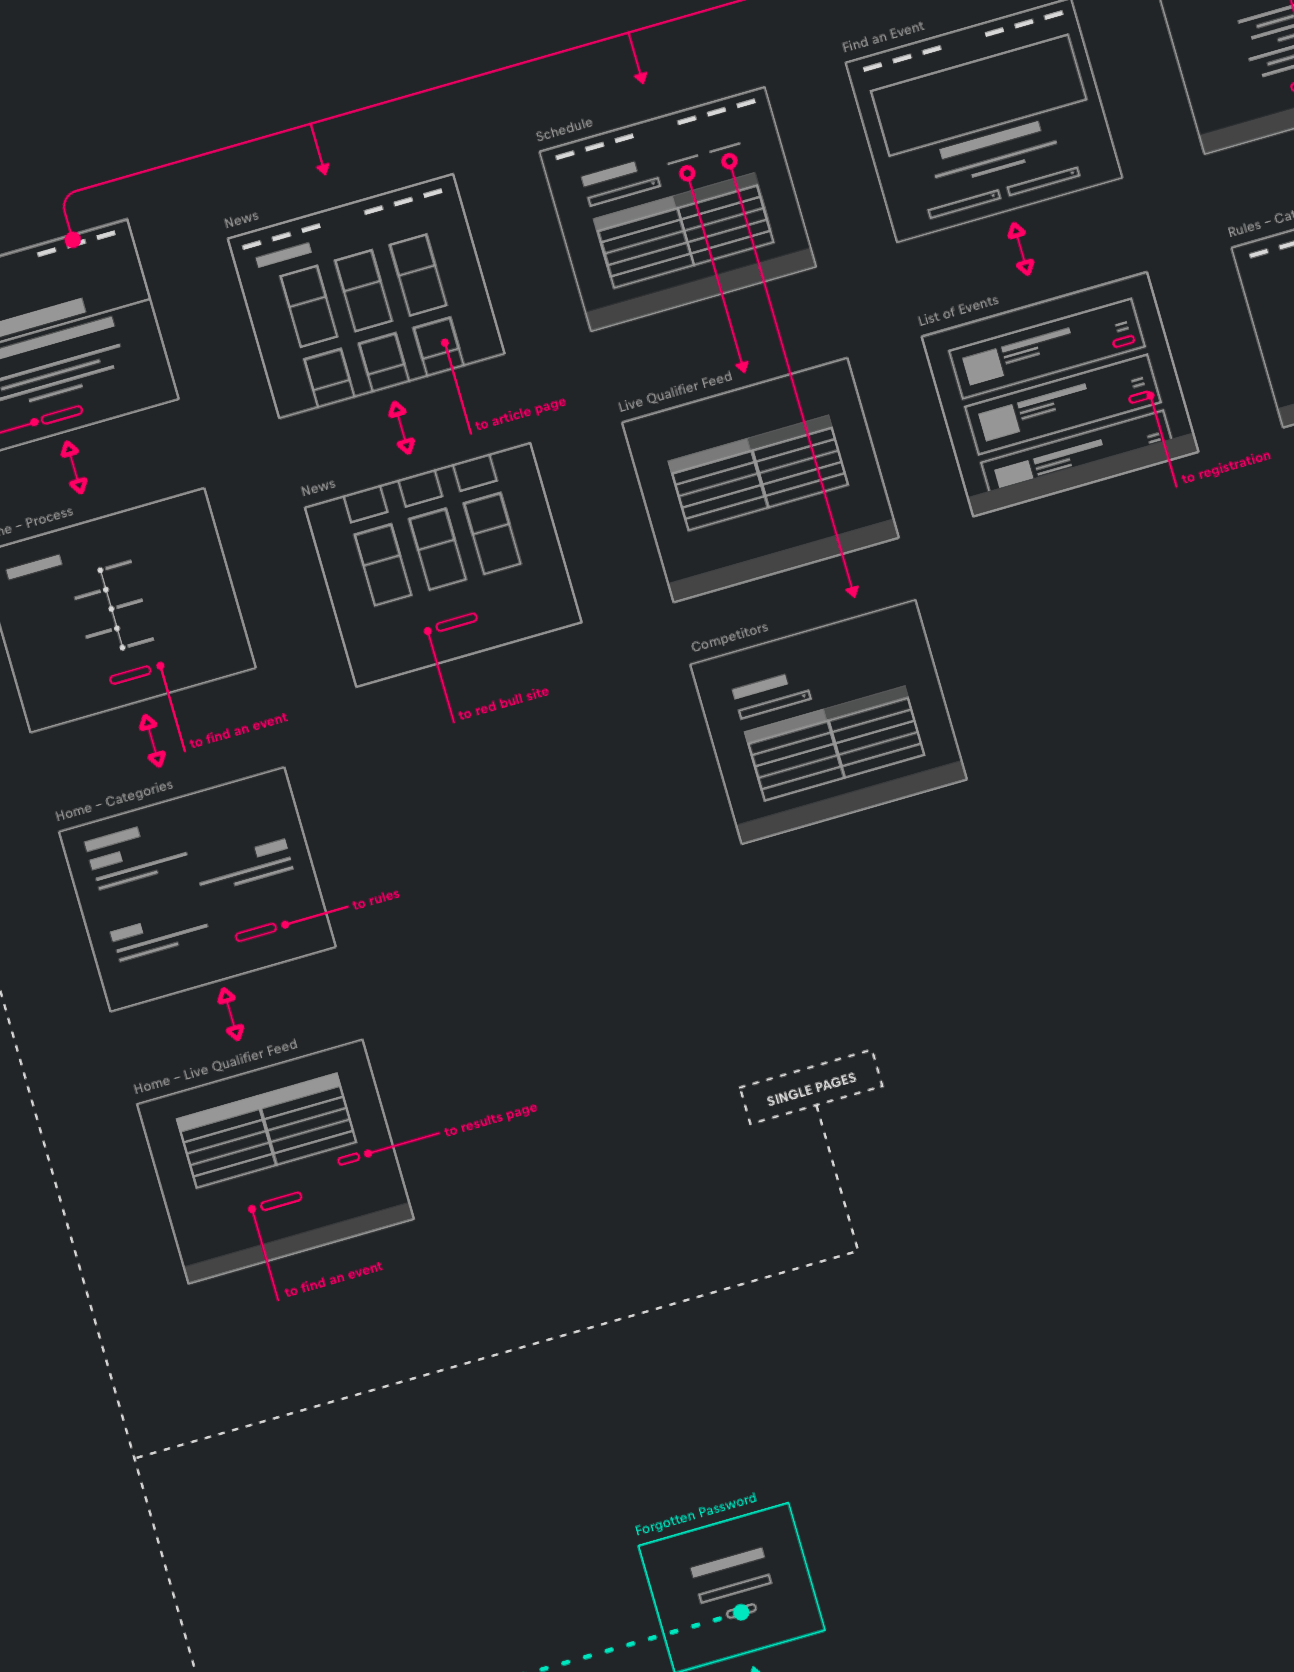 A user flow of the Red Bull Paper Wings website